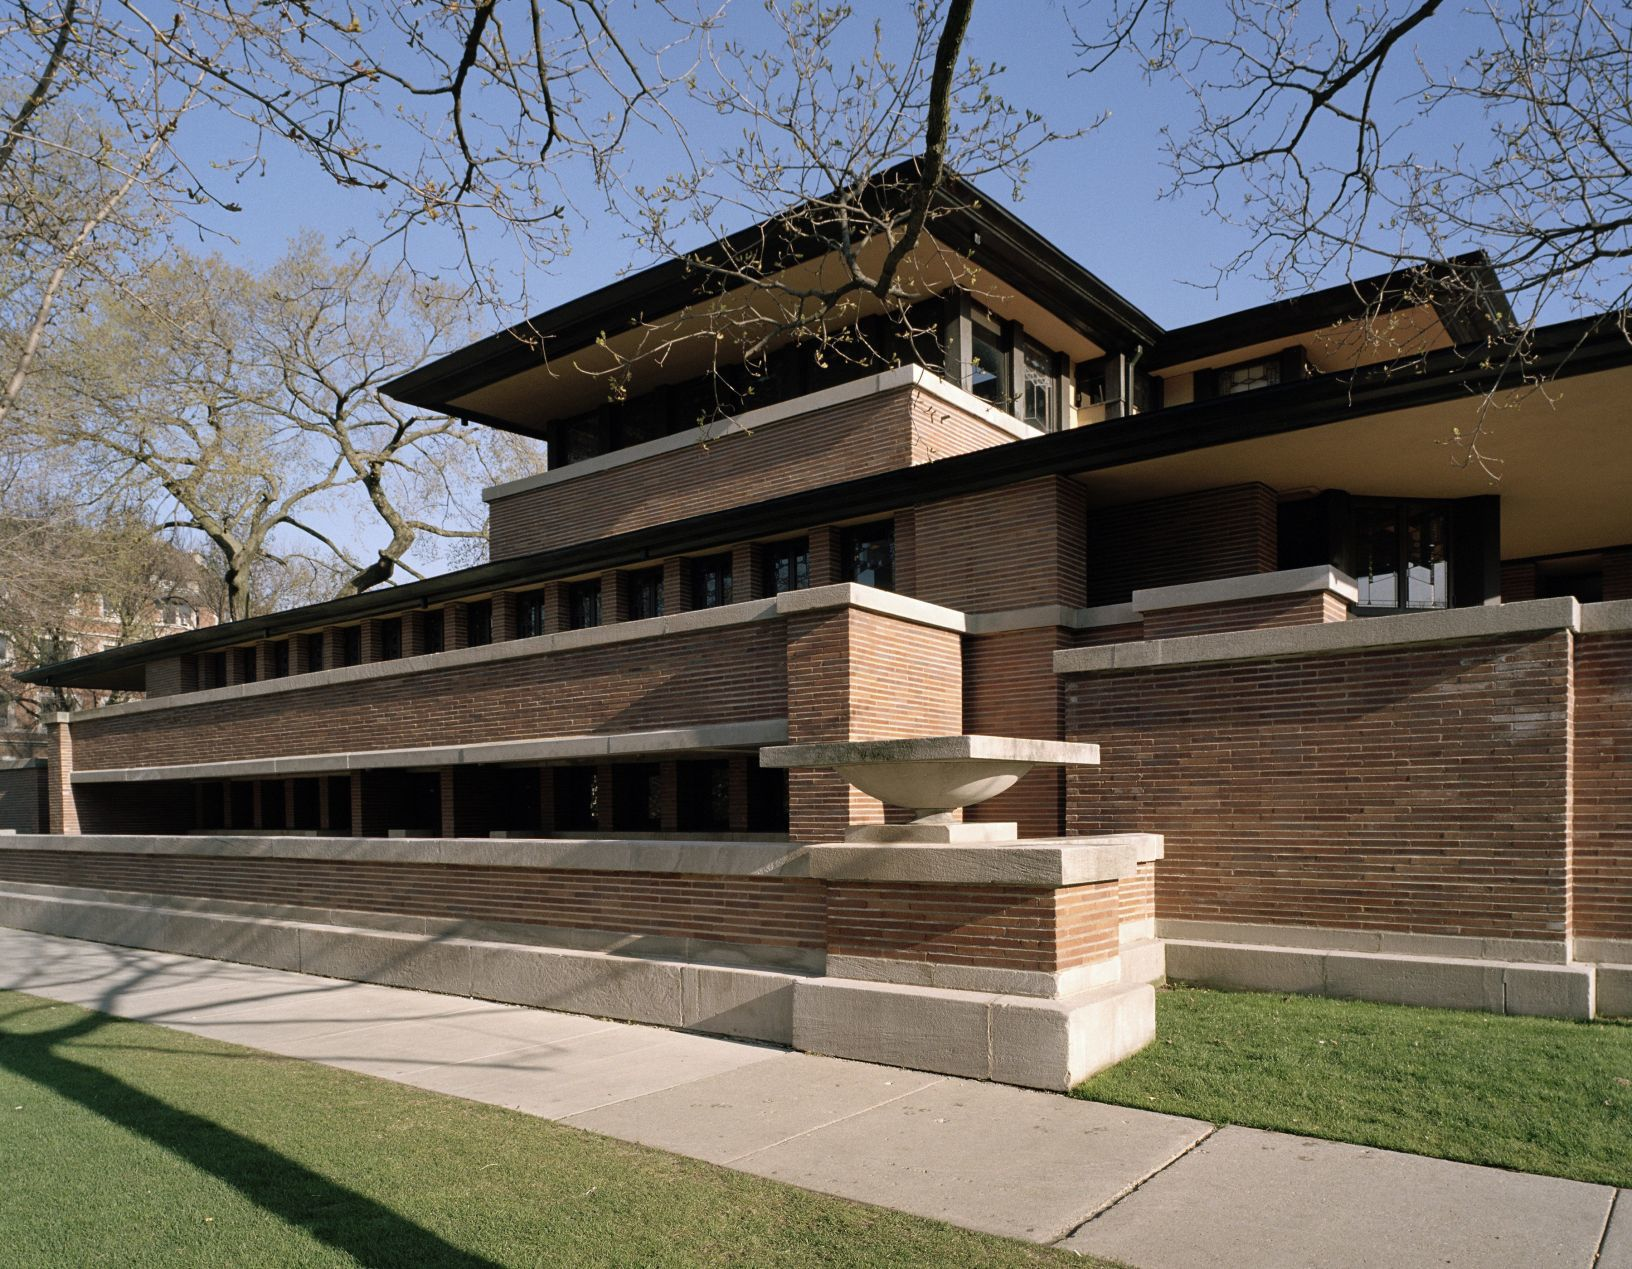 Frank Lloyd Wright New Frank Lloyd Wright Trail Unveiled 13 Sites From Rockford To